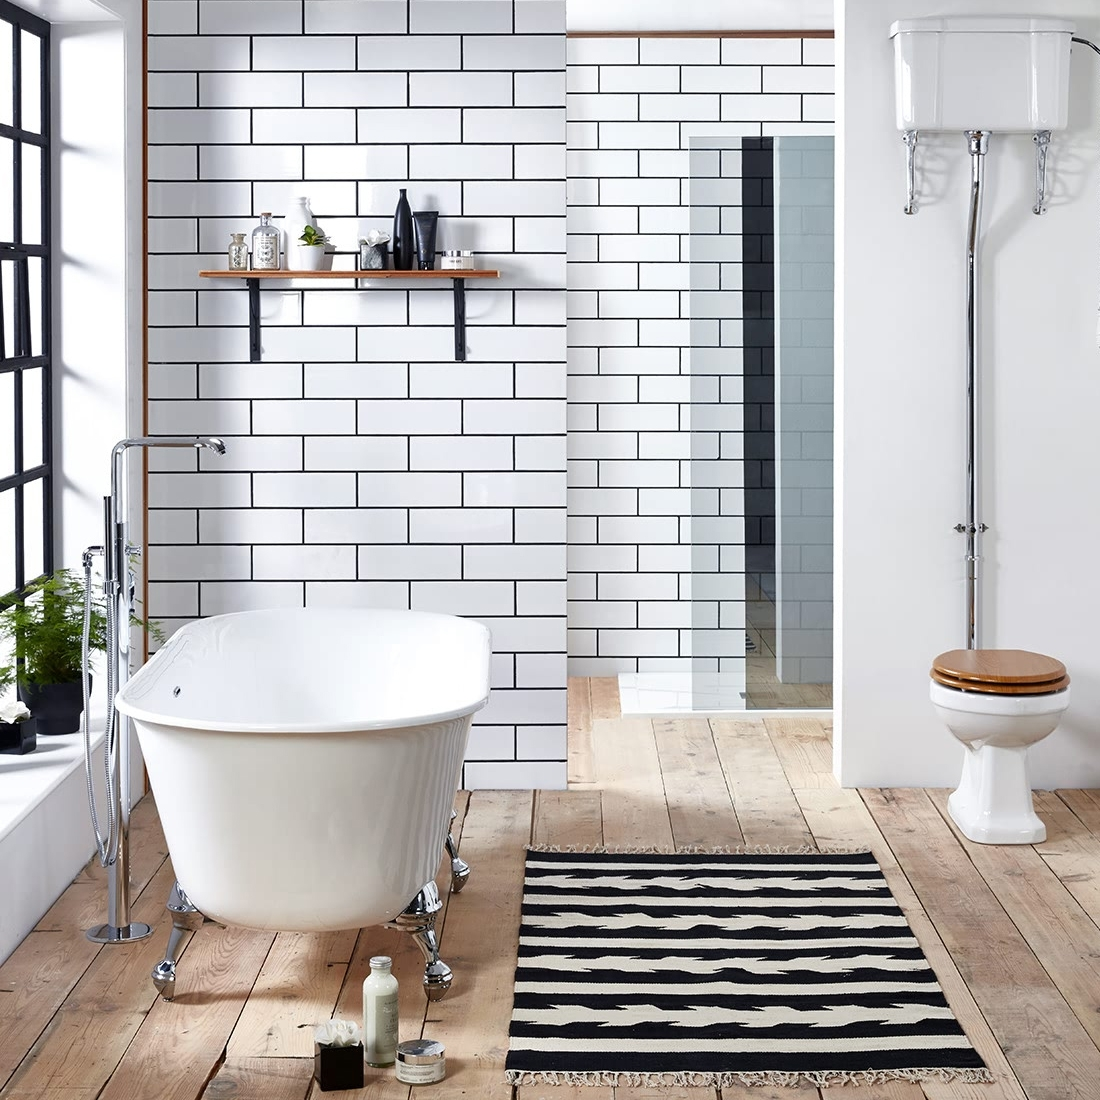 Verona Bramhope Freestanding Double Ended Bath with Chrome Ball Feet 1600mm x 750mm - White